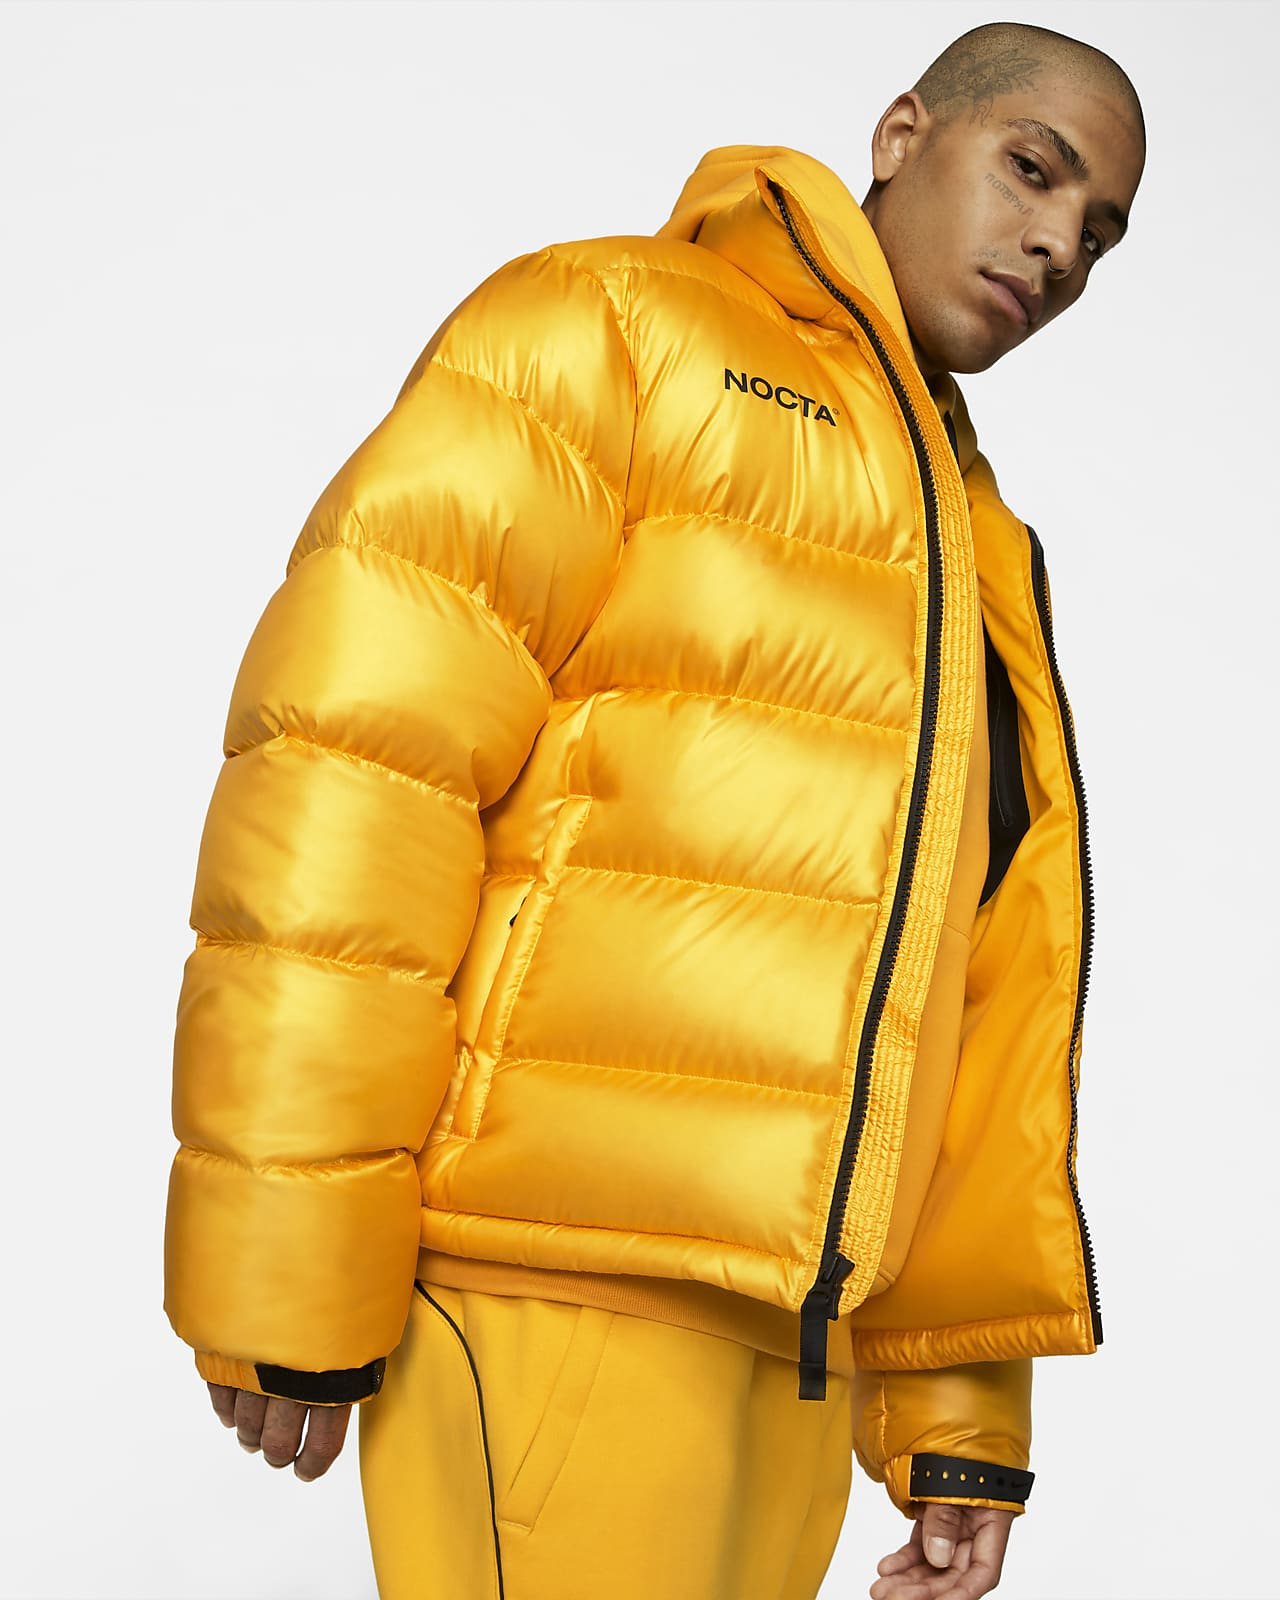 Drake Nike NOCTA University Gold Puffer Jacket